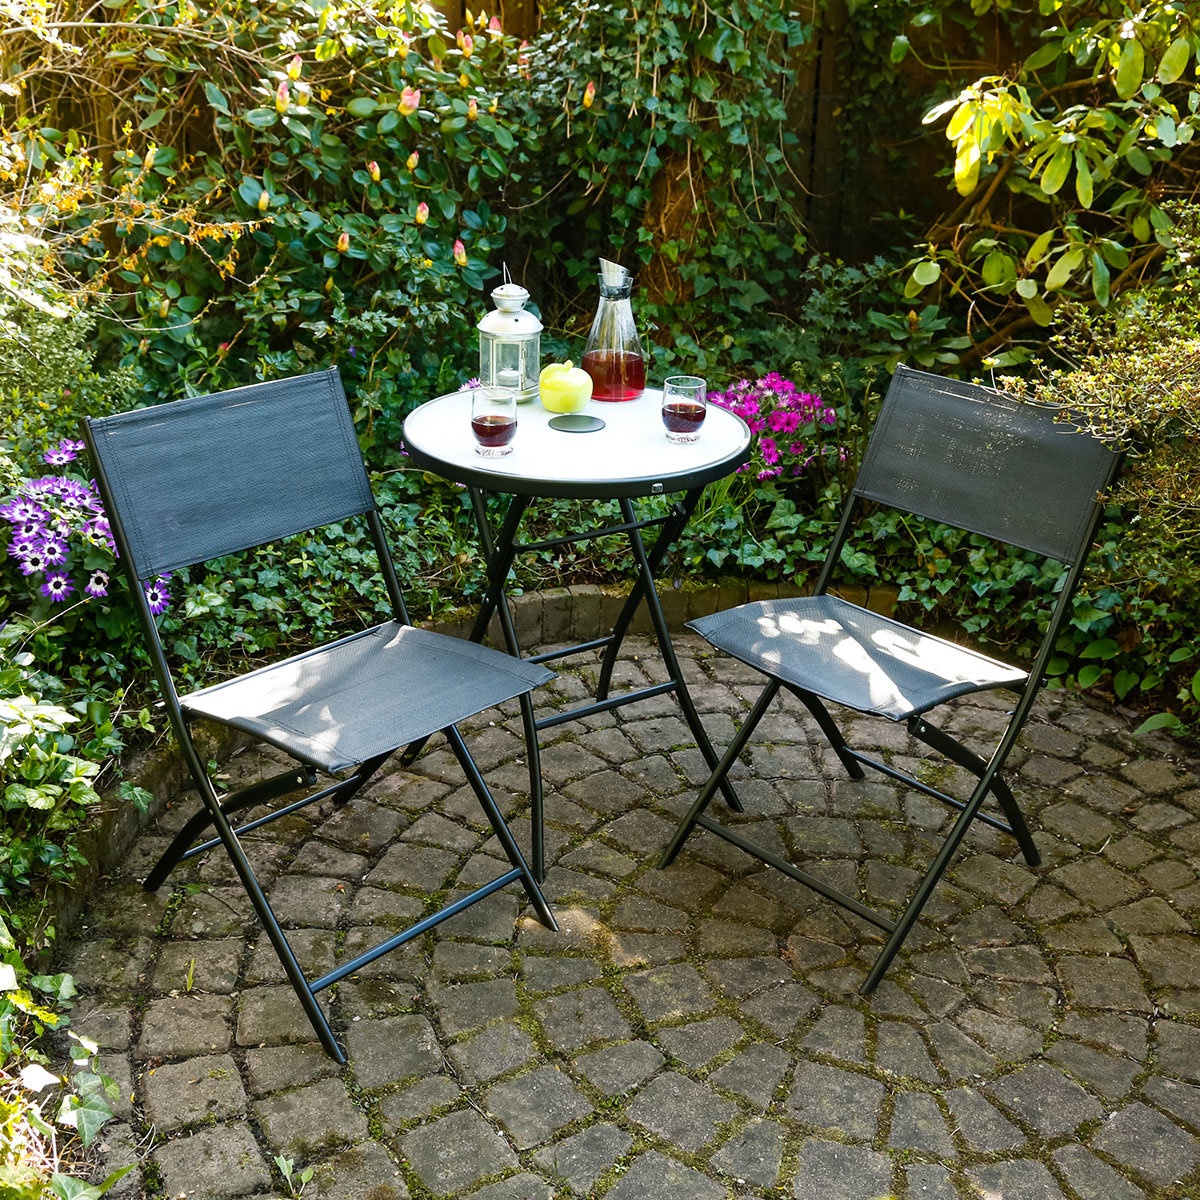 gartenm bel set happy hour von g rtner p tschke. Black Bedroom Furniture Sets. Home Design Ideas